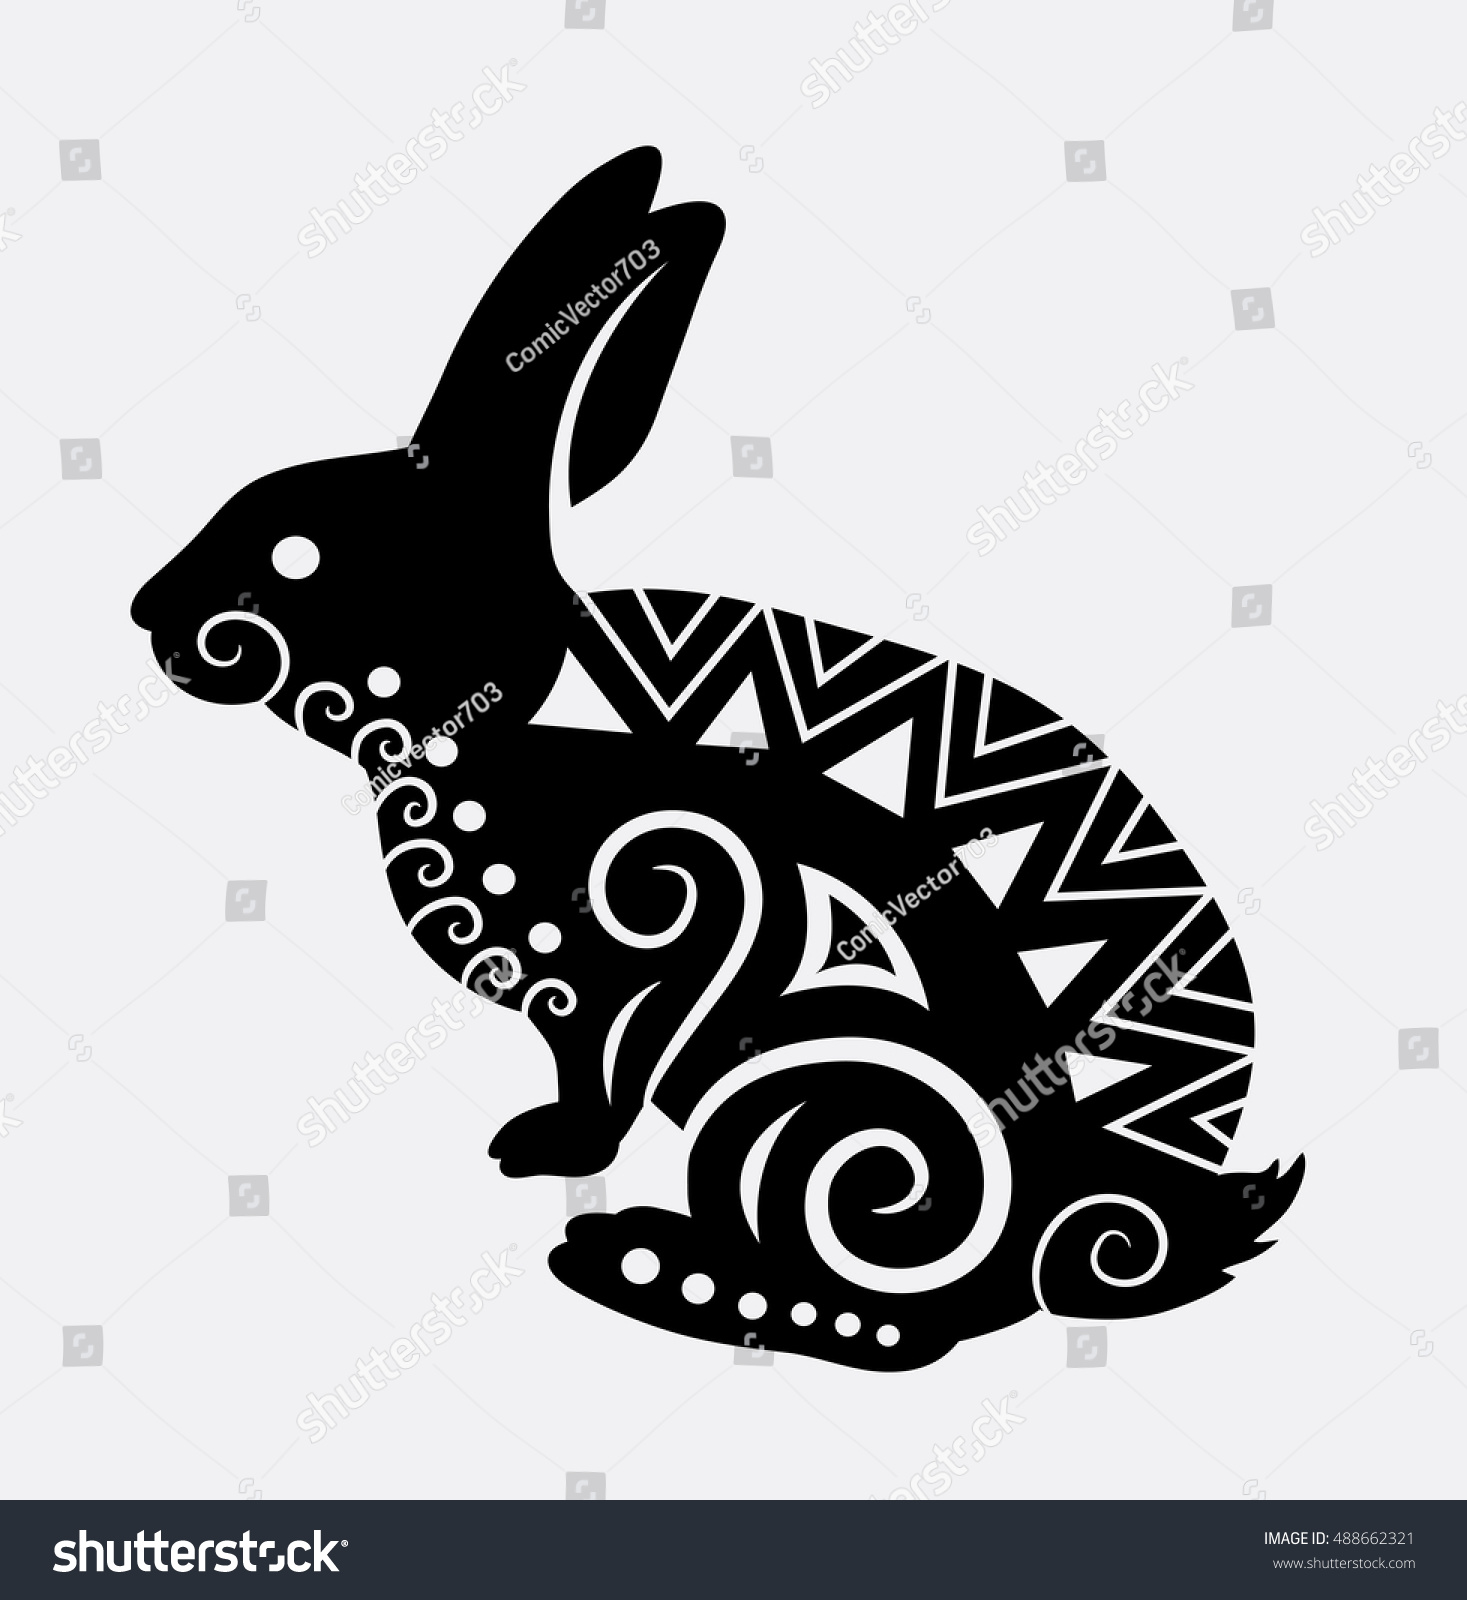 Stock vector ethnic animal doodle detail pattern killer whale - Rabbit Pet Animal With Curl Ornament Decoration Good Use For Symbol Web Icon